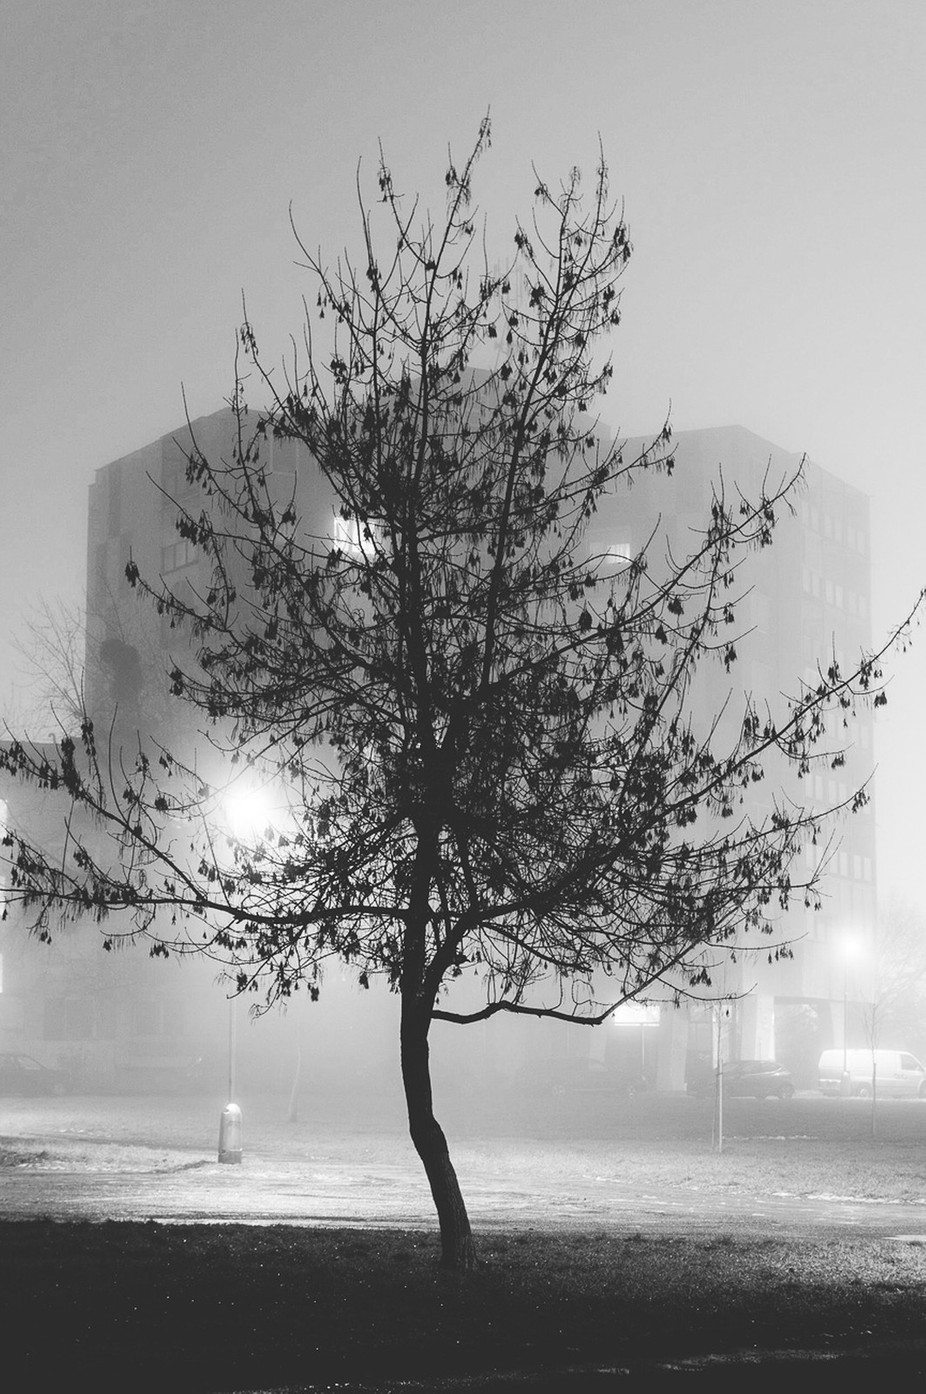 The mist by ErikSvec - Fog And City Photo Contest